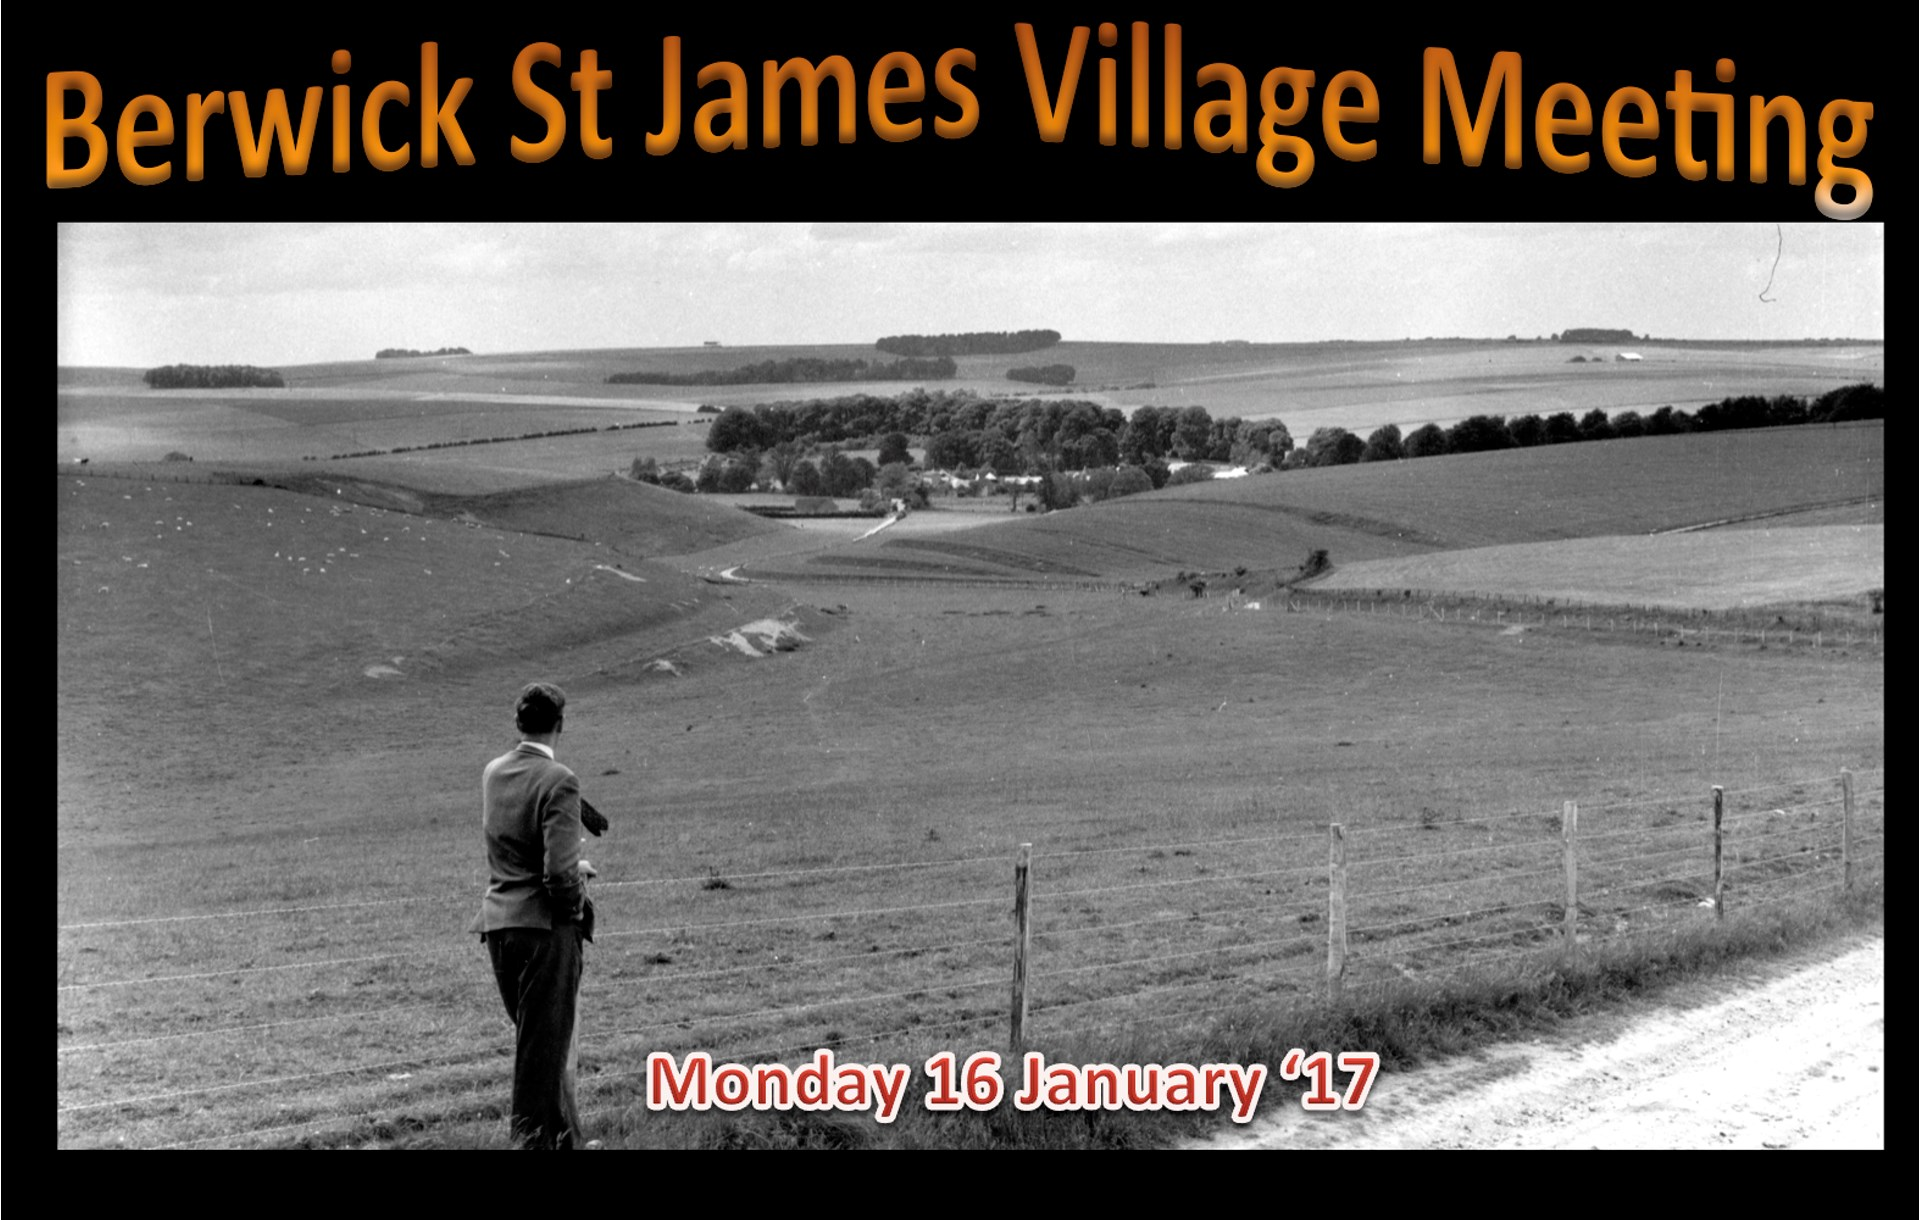 Berwick St James Parish Community Village Meeting - 16 January '17